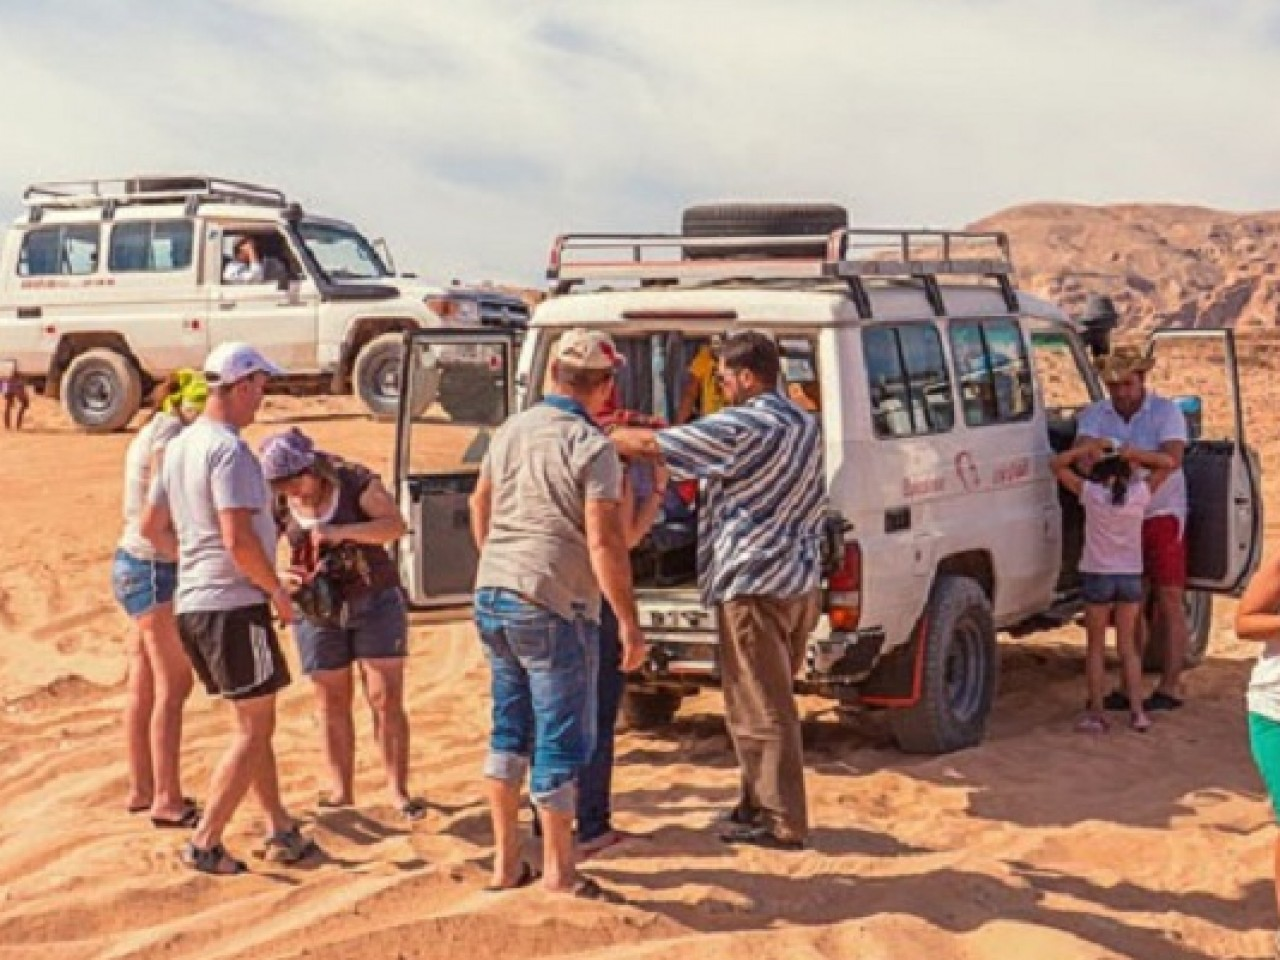 Jeep Safari, Camel Rides, and Bedouin Village BBQ